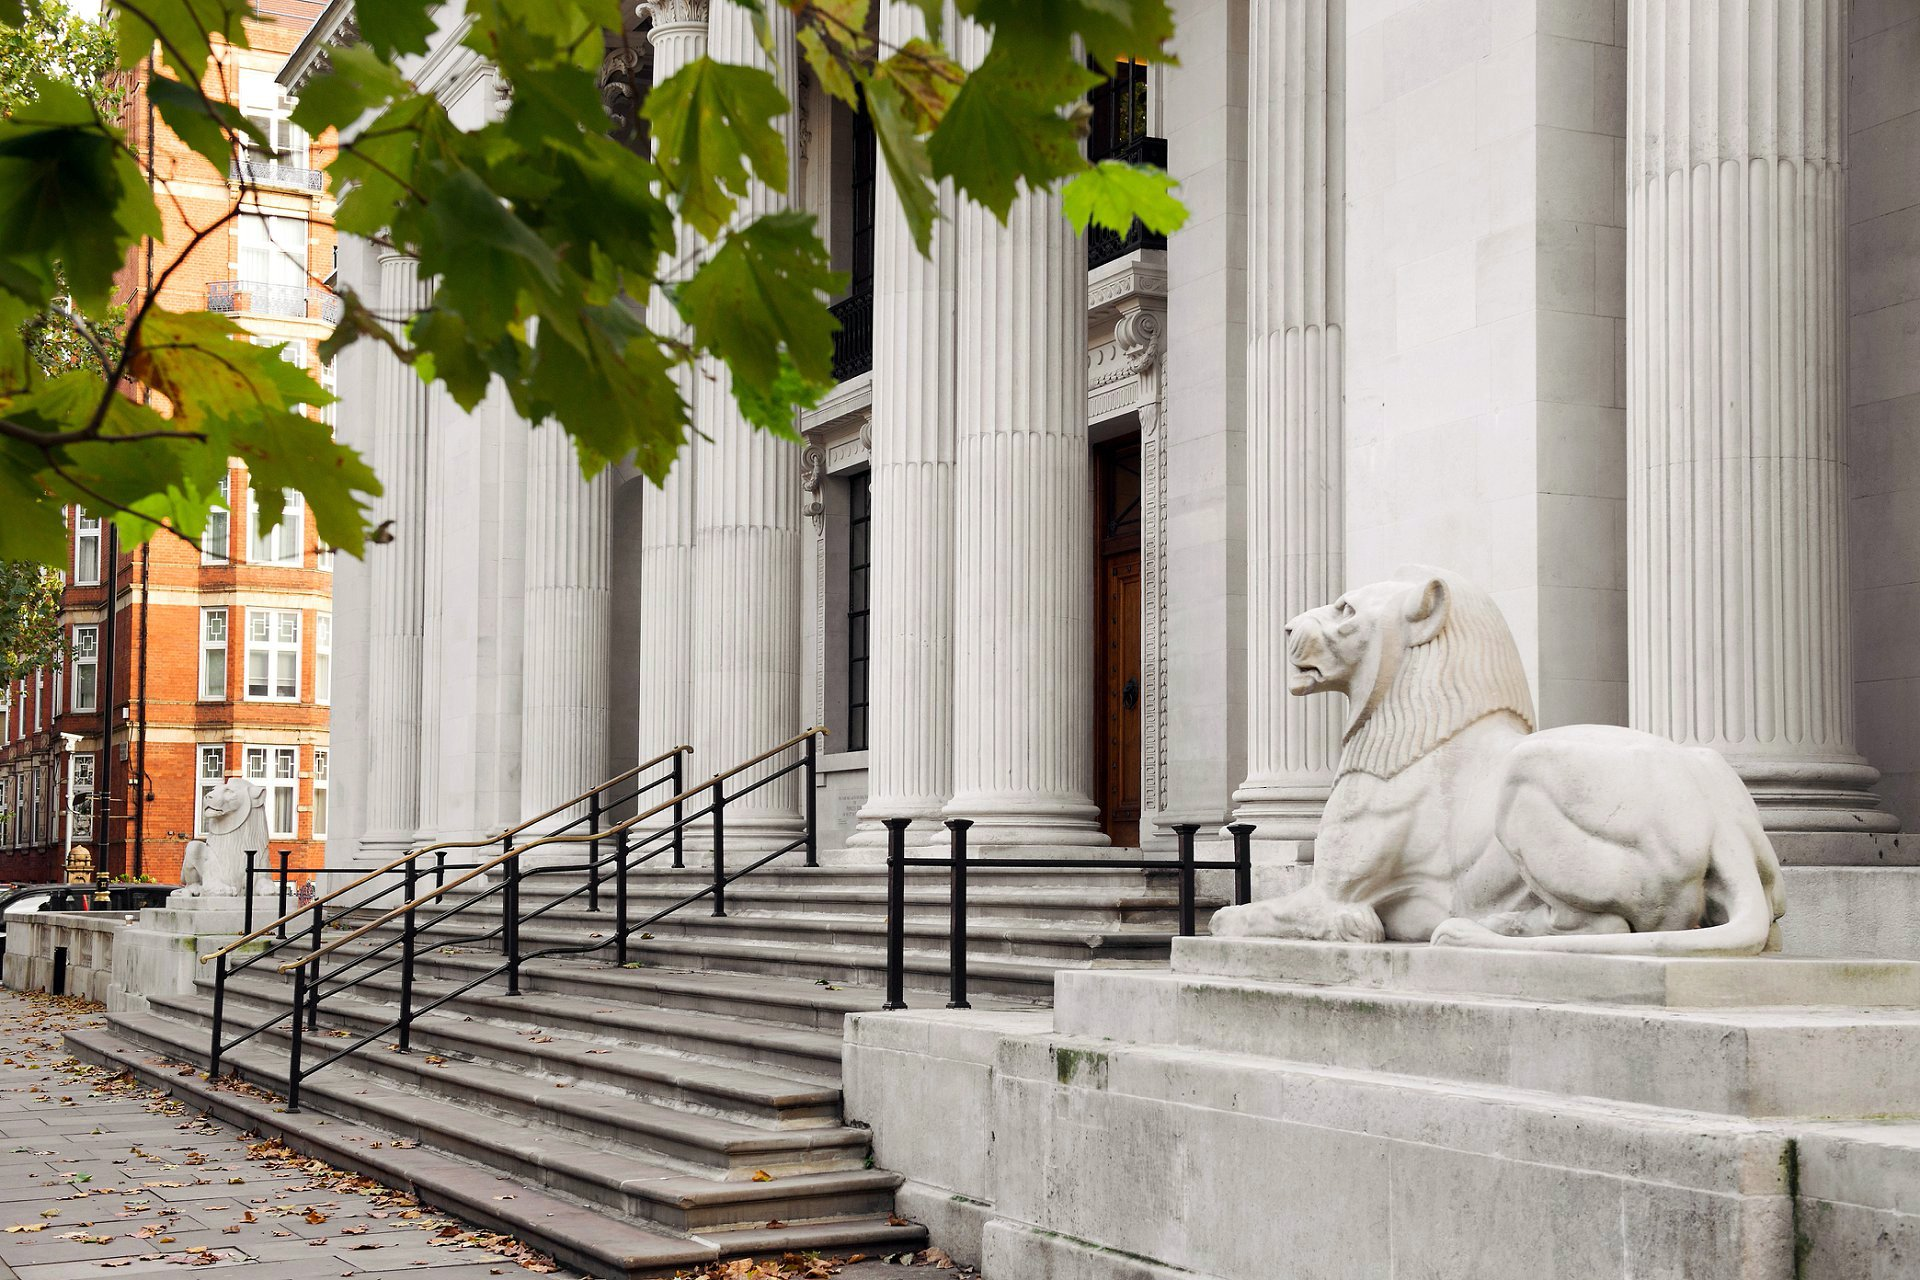 The stone lions, fluted columns, and steps outside Old Marylebone Town Hall taken in Autumn 2017 after cleaning work (photo by taken by Emma Duggan Photography, specialist register office photographer)